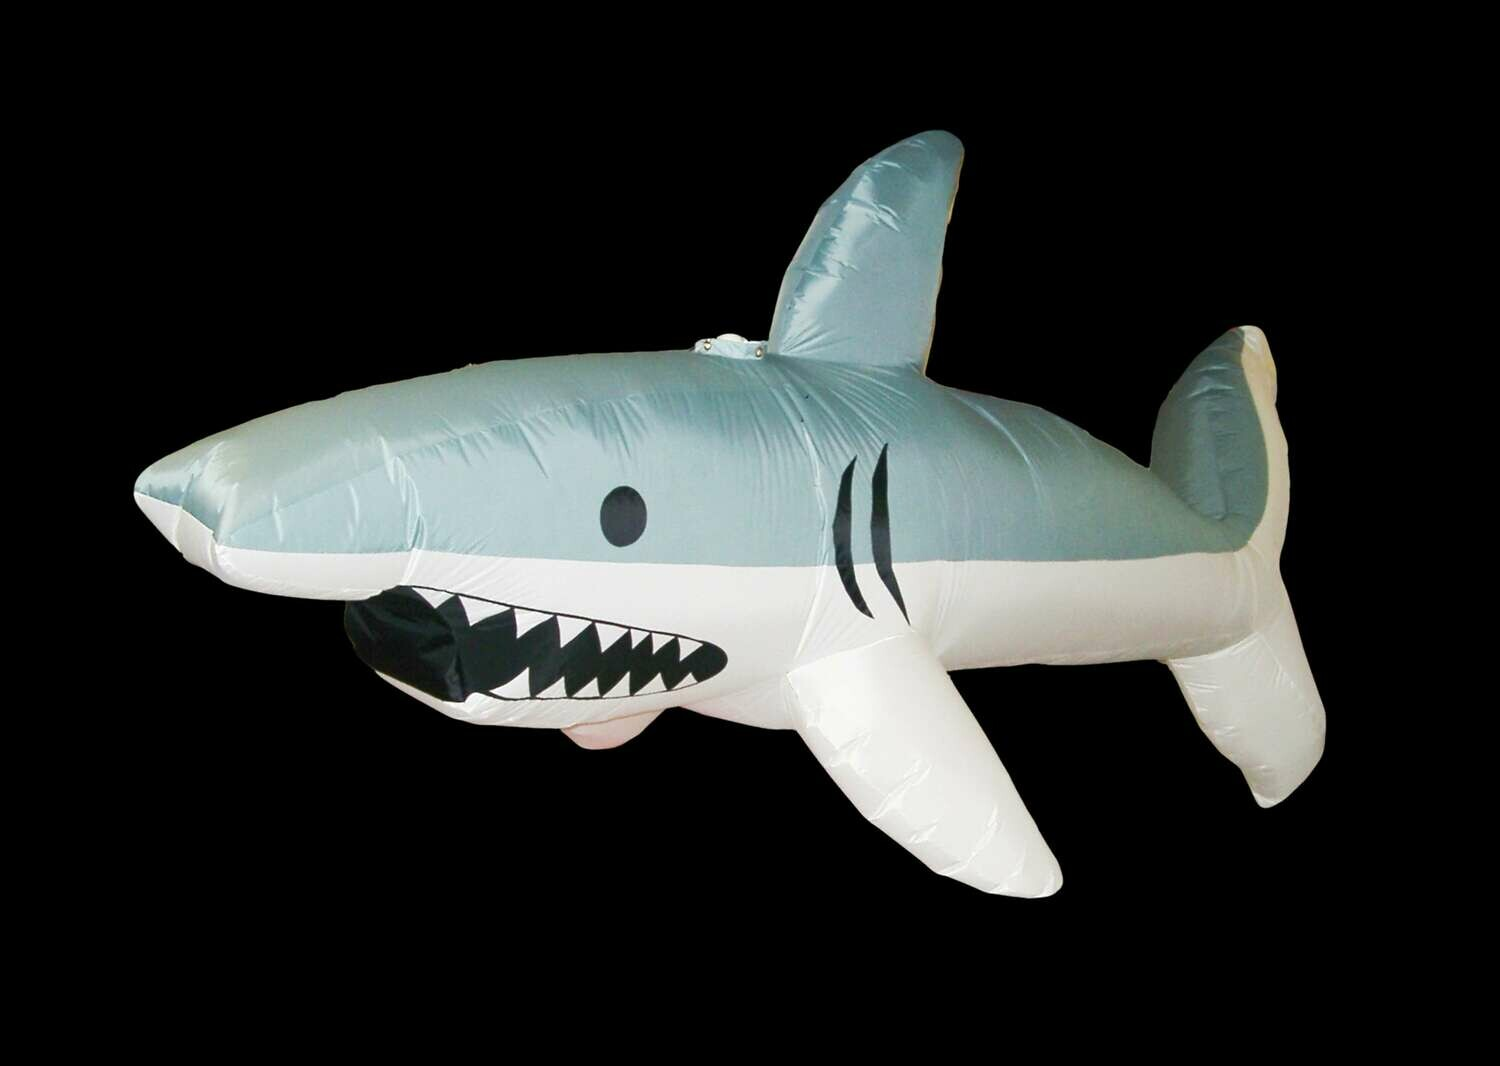 Hanging Inflatable Shark 8.2ft/250cm x 3.5ft/108cm